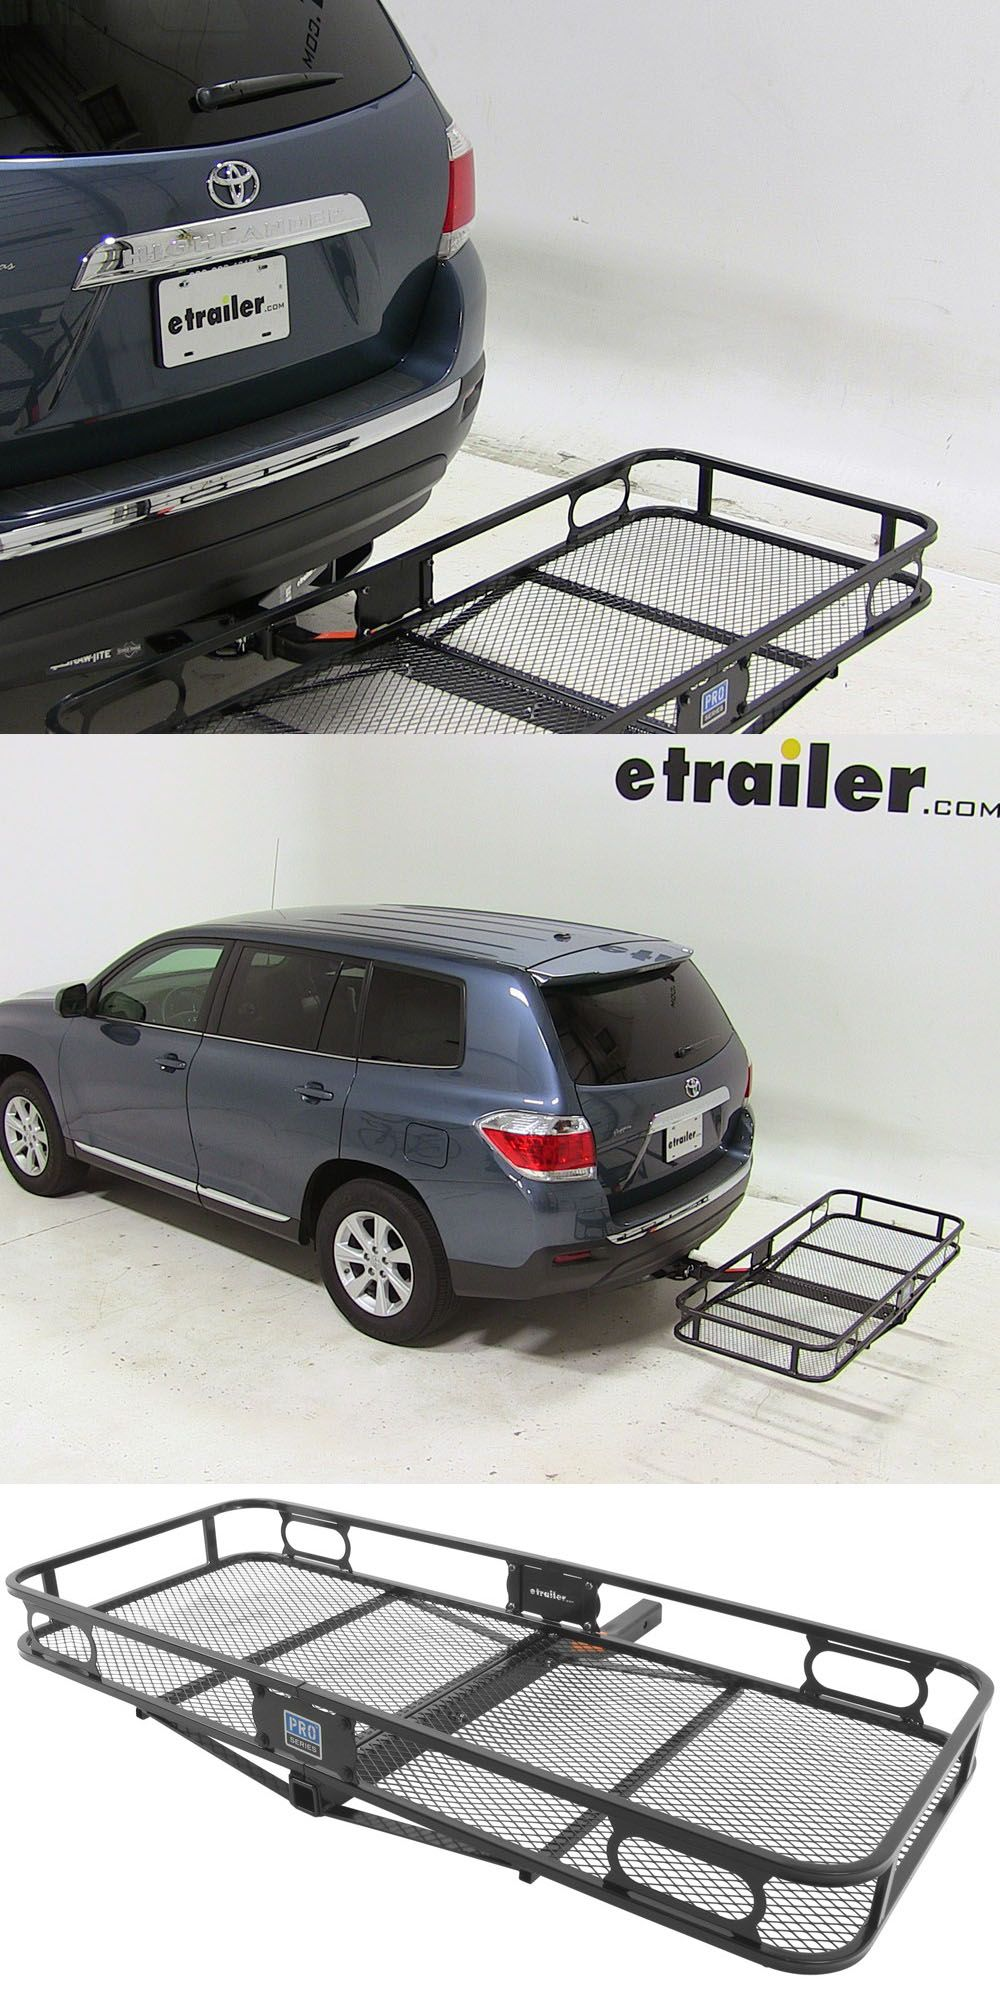 Pro Seriech Cargo Carrier With Raised Rails You Can Transport Hiking And Camping Gear Securely Efficiently Compatible The Toyota Highlander